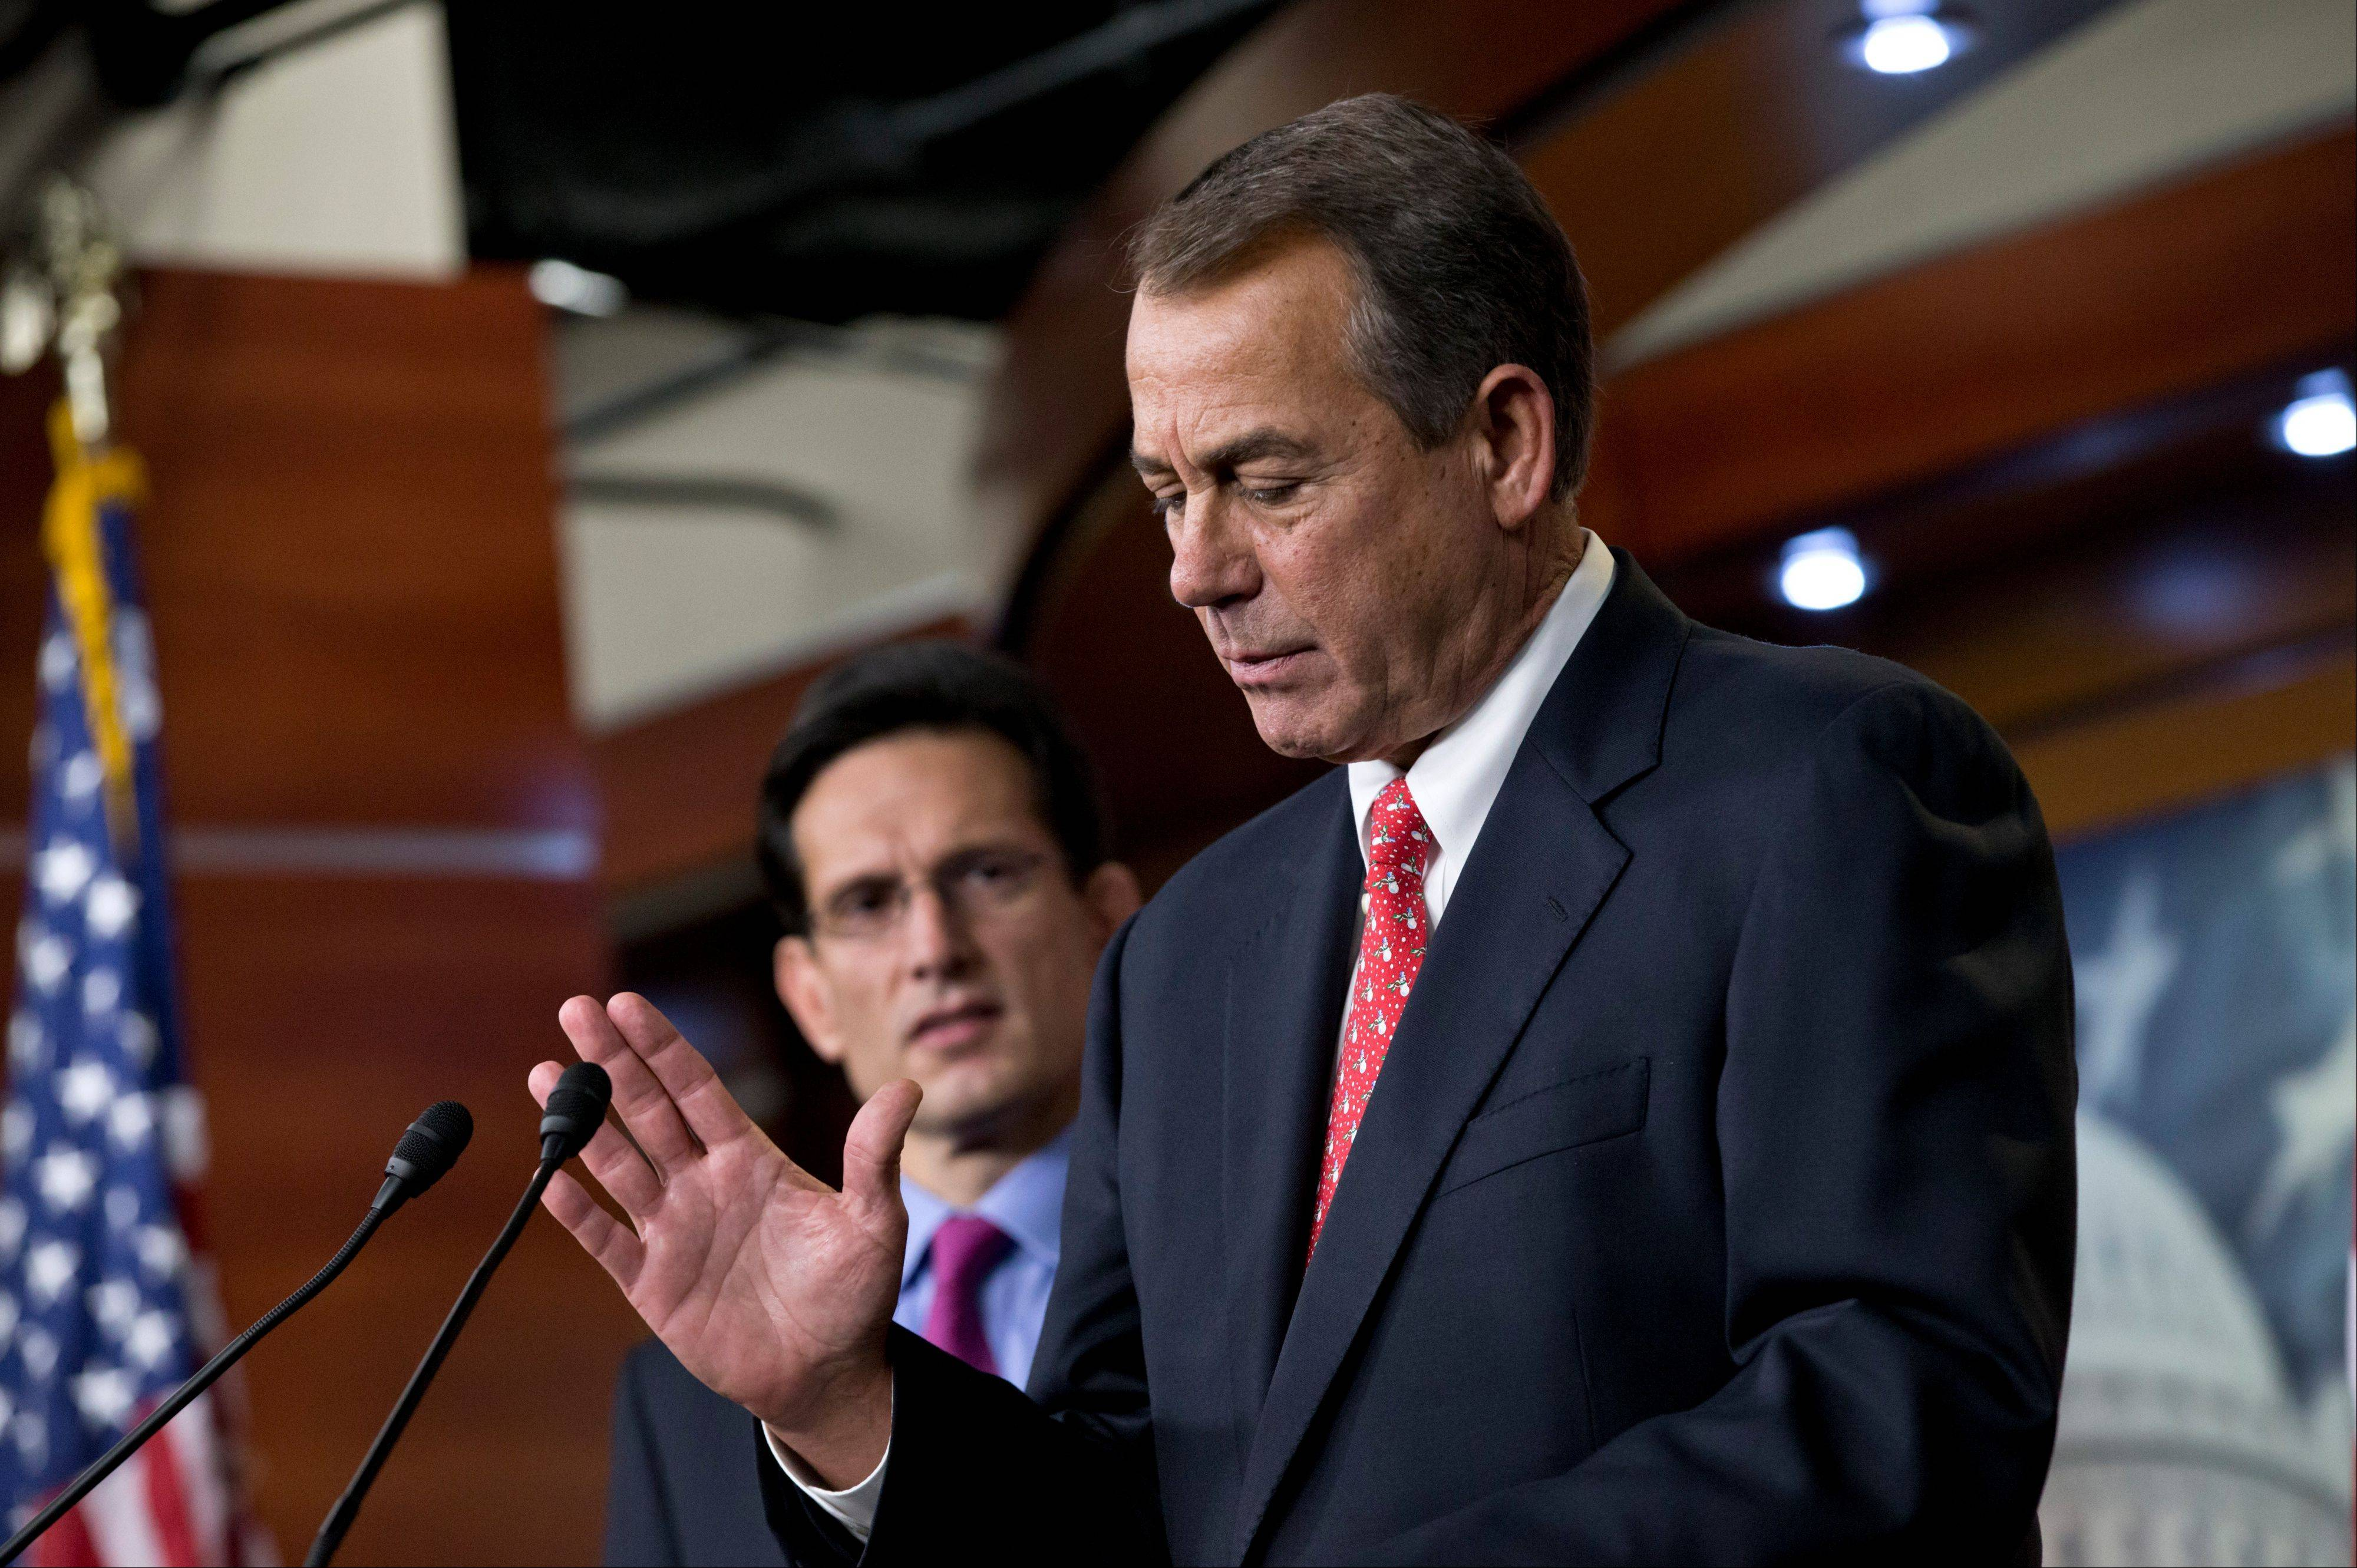 Speaker of the House John Boehner, R-Ohio, joined by House Majority Leader Eric Cantor, R-Va., left, speaks to reporters about the fiscal cliff negotiations at the Capitol in Washington, Friday.